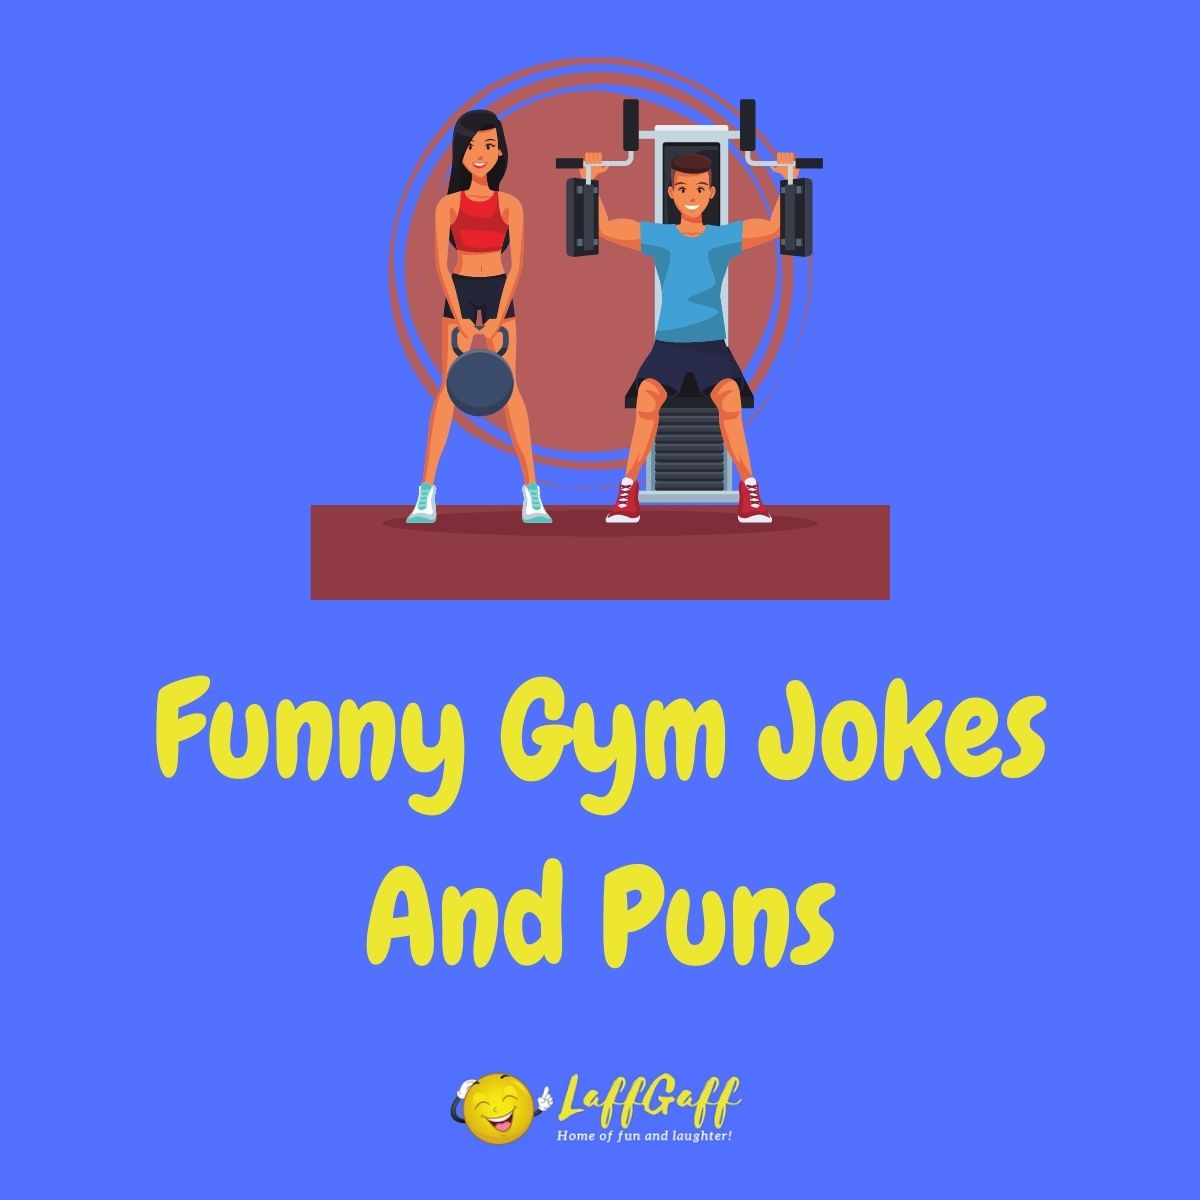 Featured image for a page of funny gym jokes and puns.